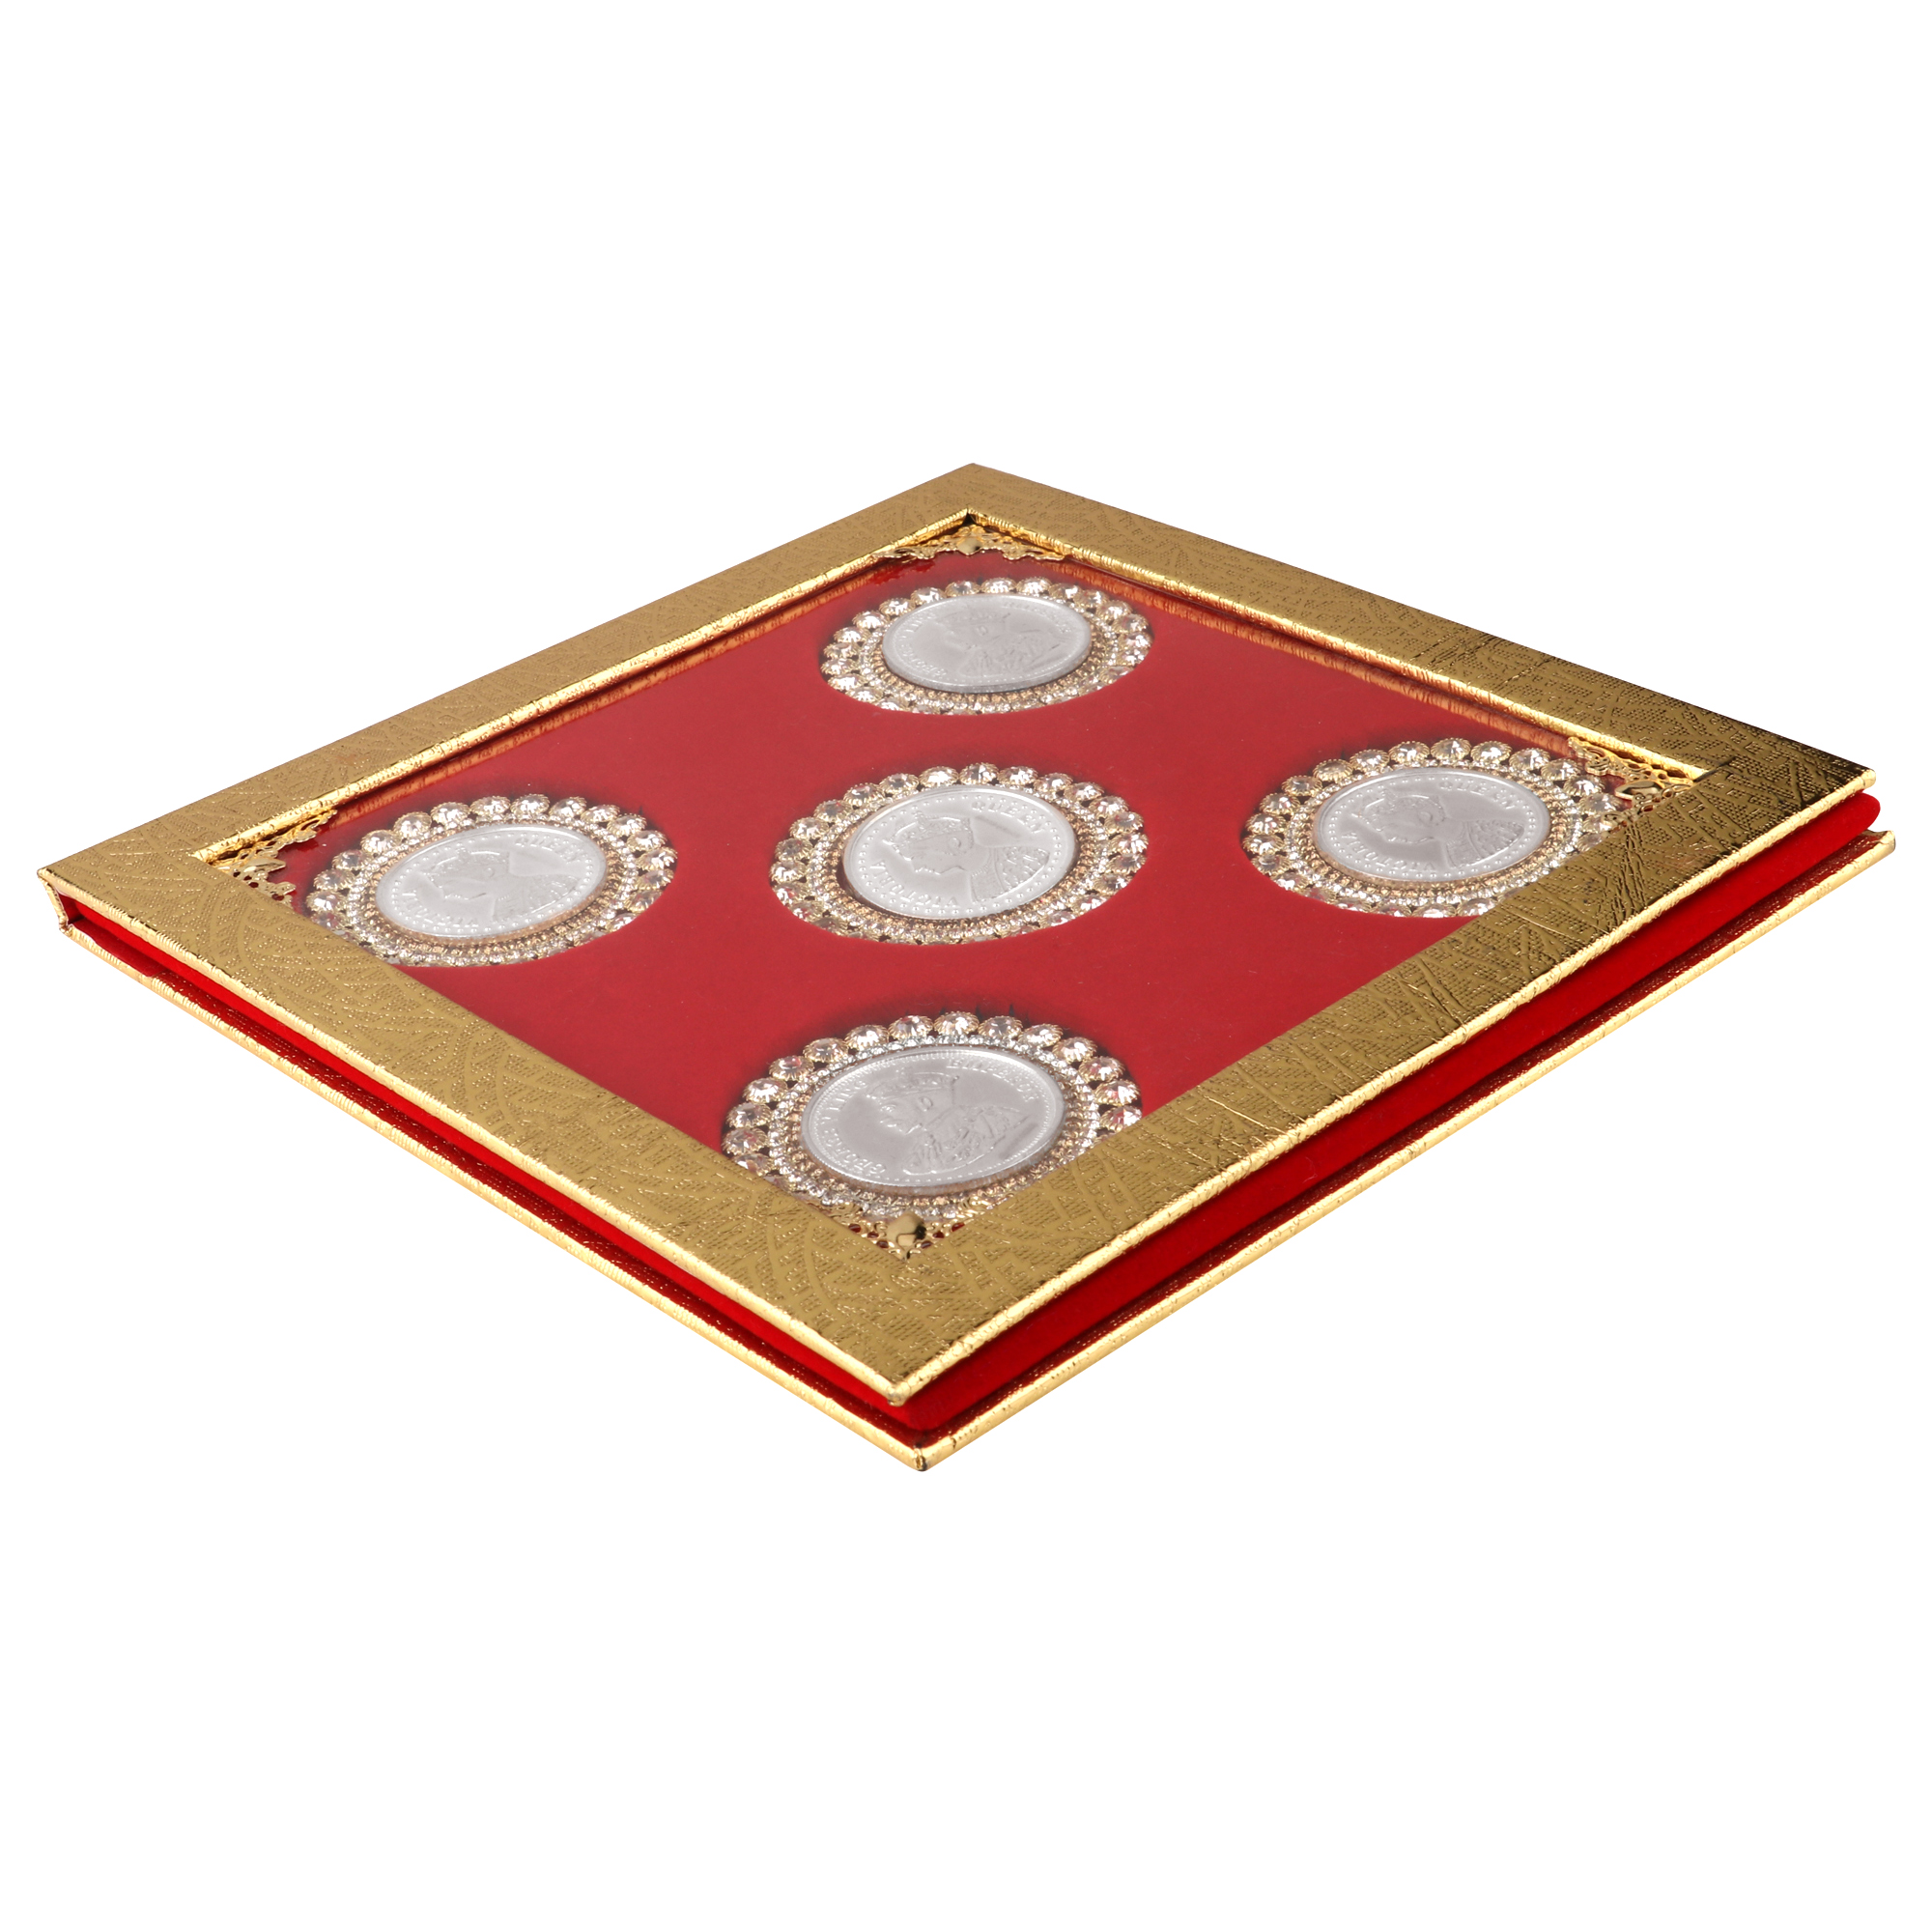 Silver Coin 10gm x5 in Red Golden Ring Packing by Osasbazaar Main